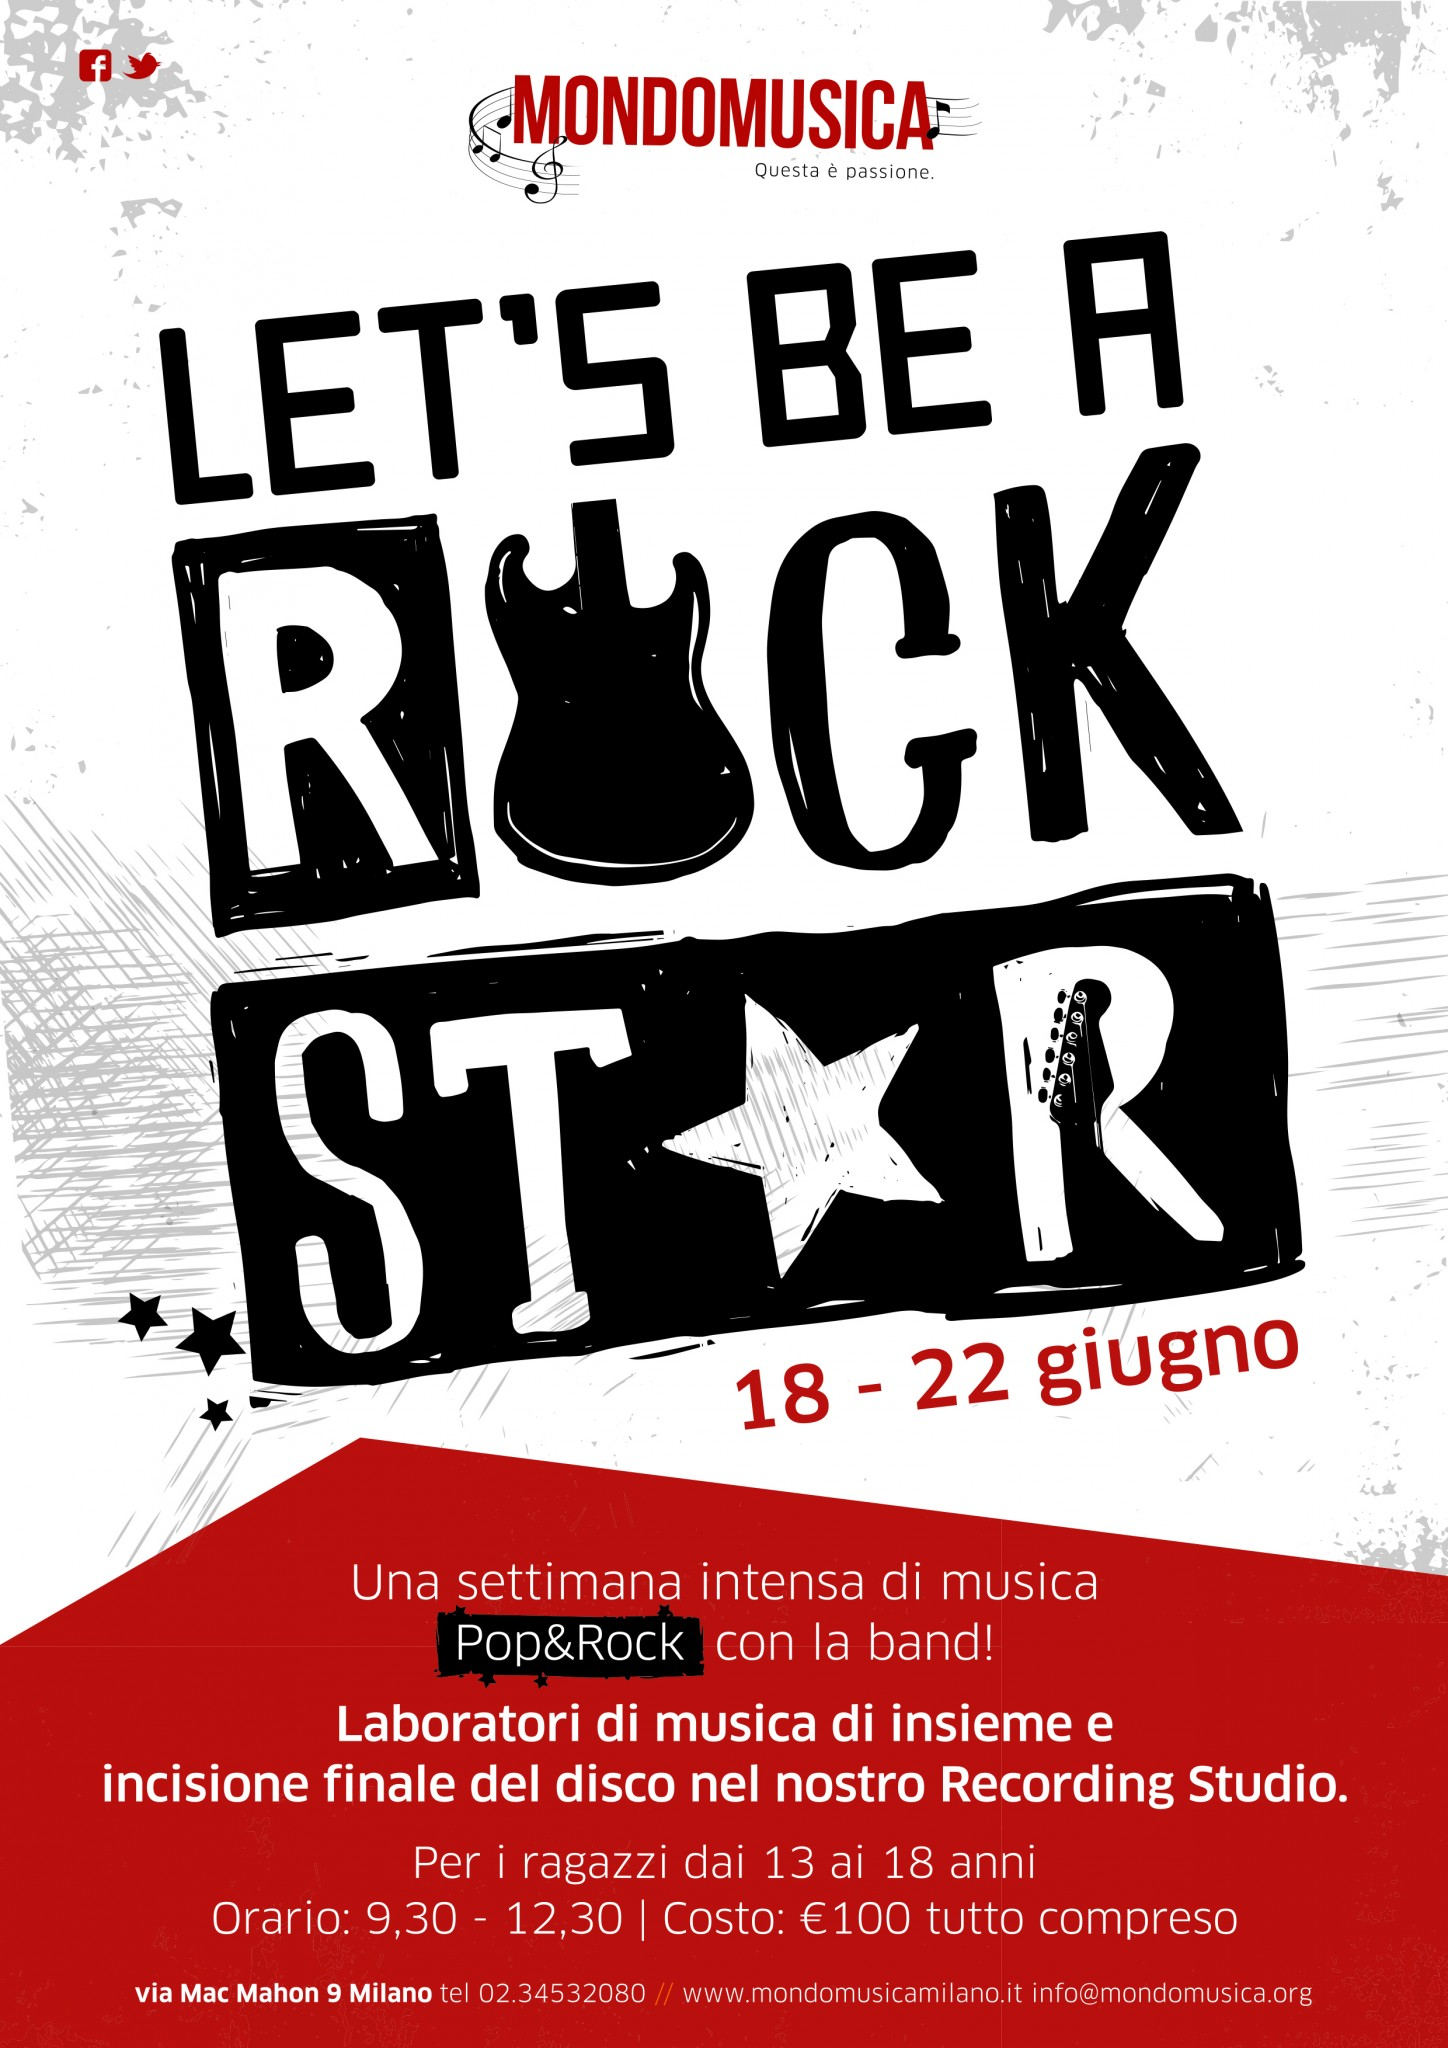 Let's be a rock star